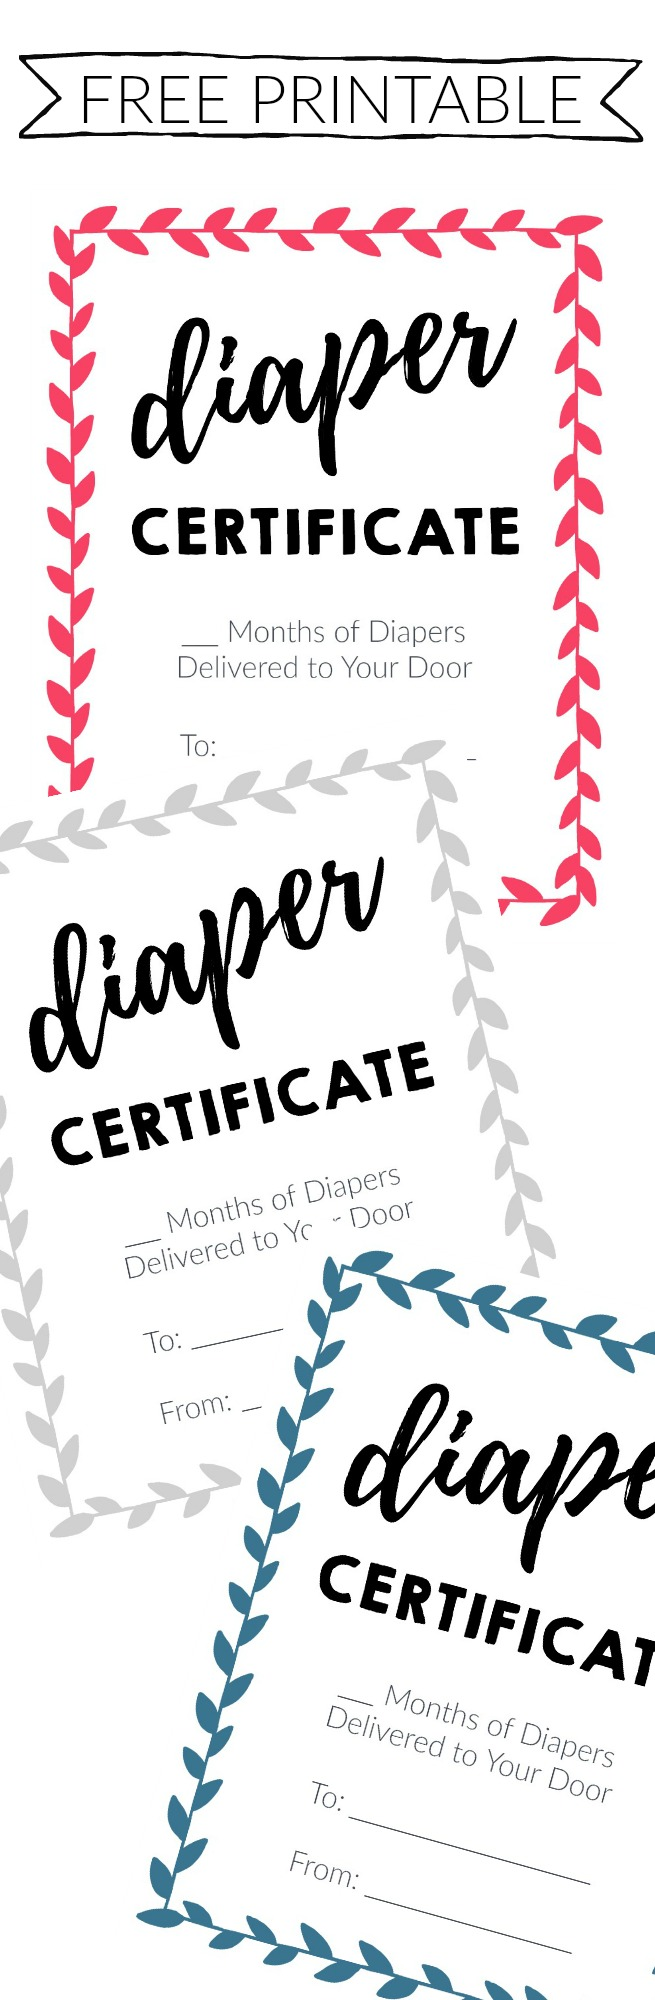 Best Baby Shower Gift Certificate - Free Printable